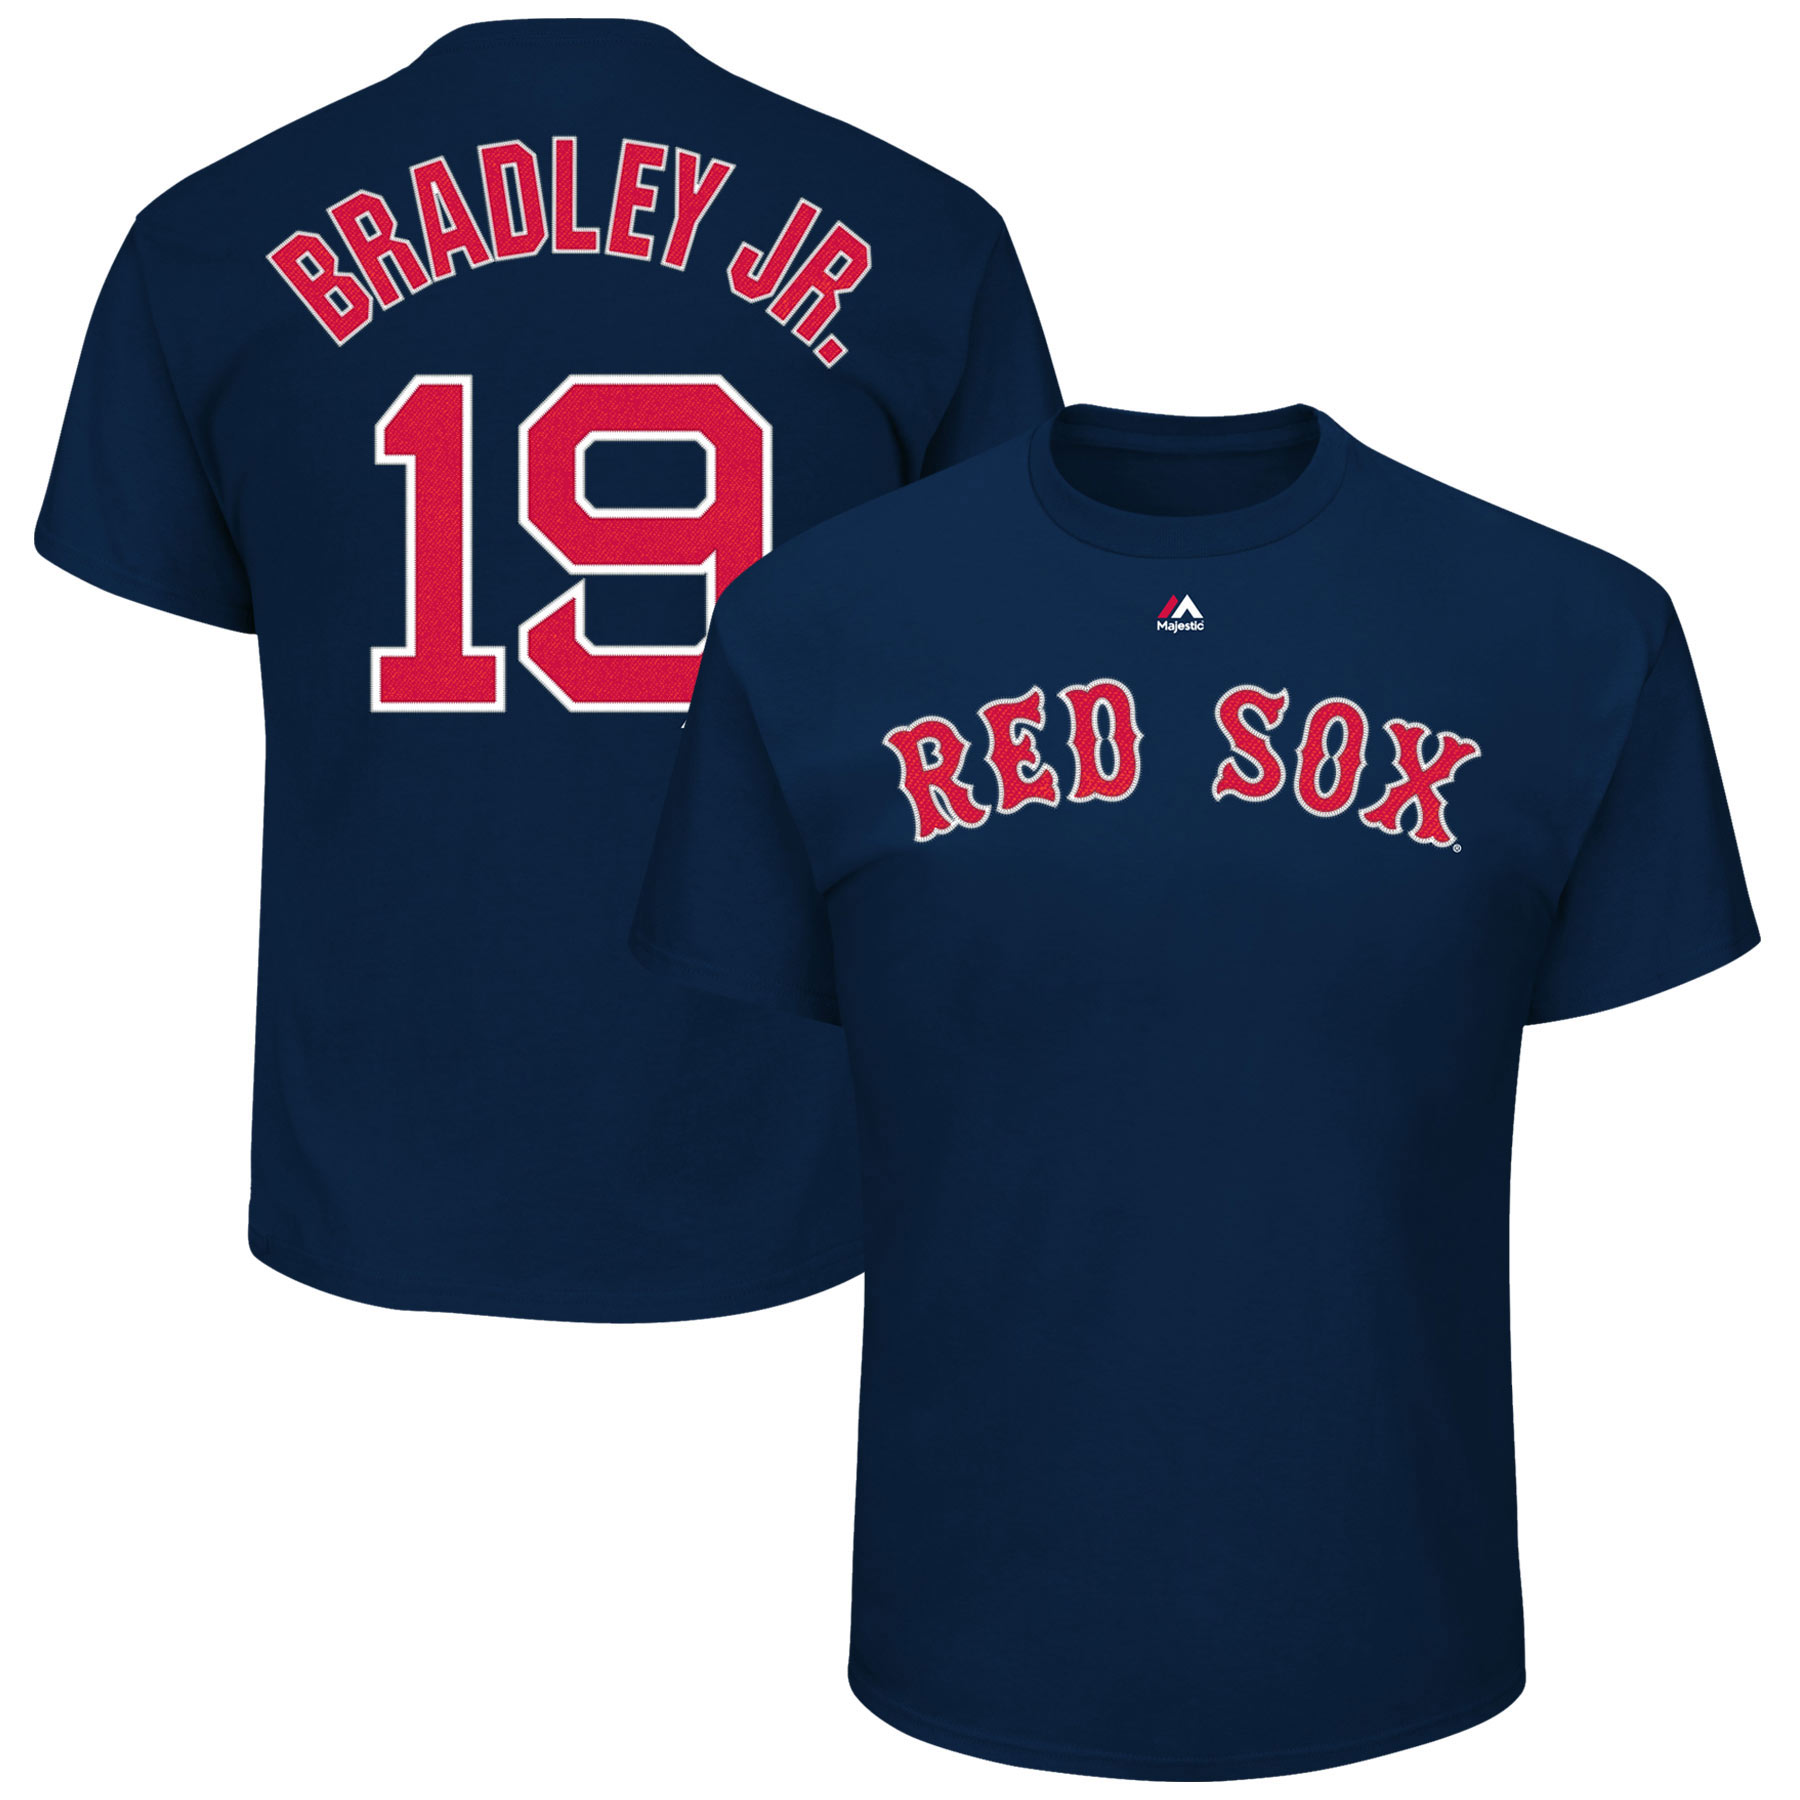 Jackie Bradley Jr. 19 Boston Red Sox Majestic Official Name and Number T-Shirt - Navy